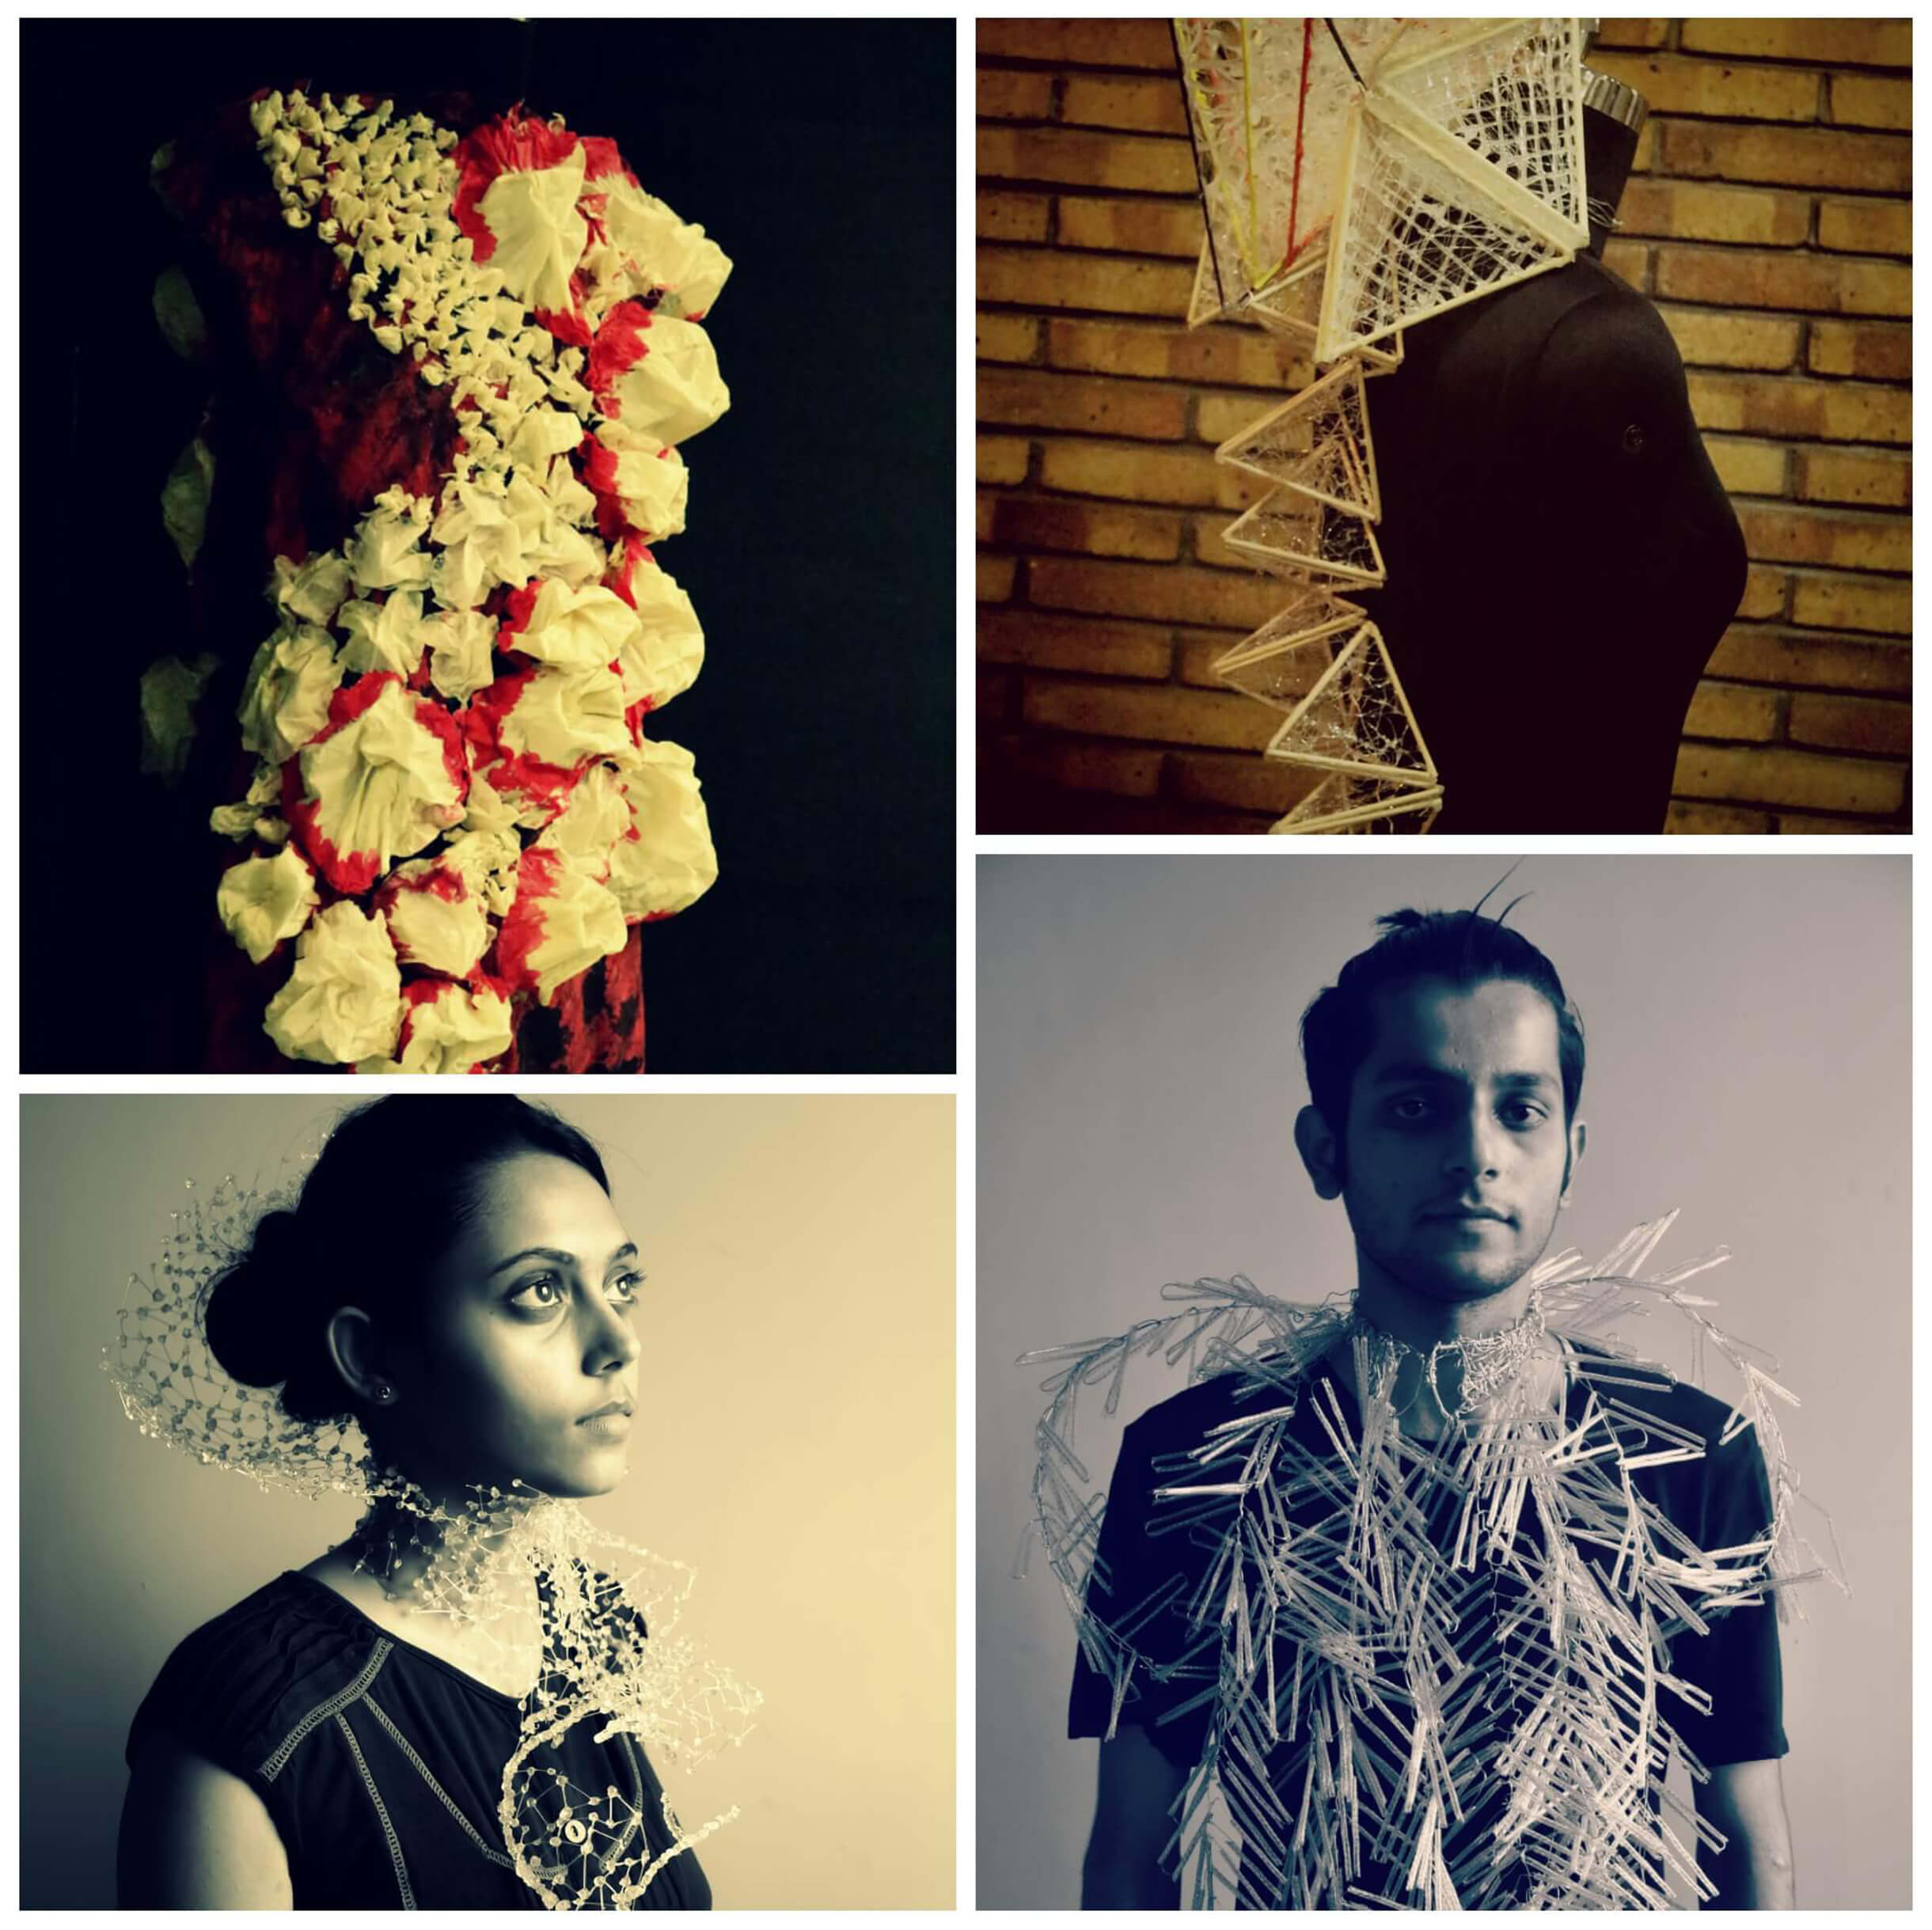 IIAD, affiliated with Kingston University which is ranked among the top 2 fashion design colleges, students showcasing their work